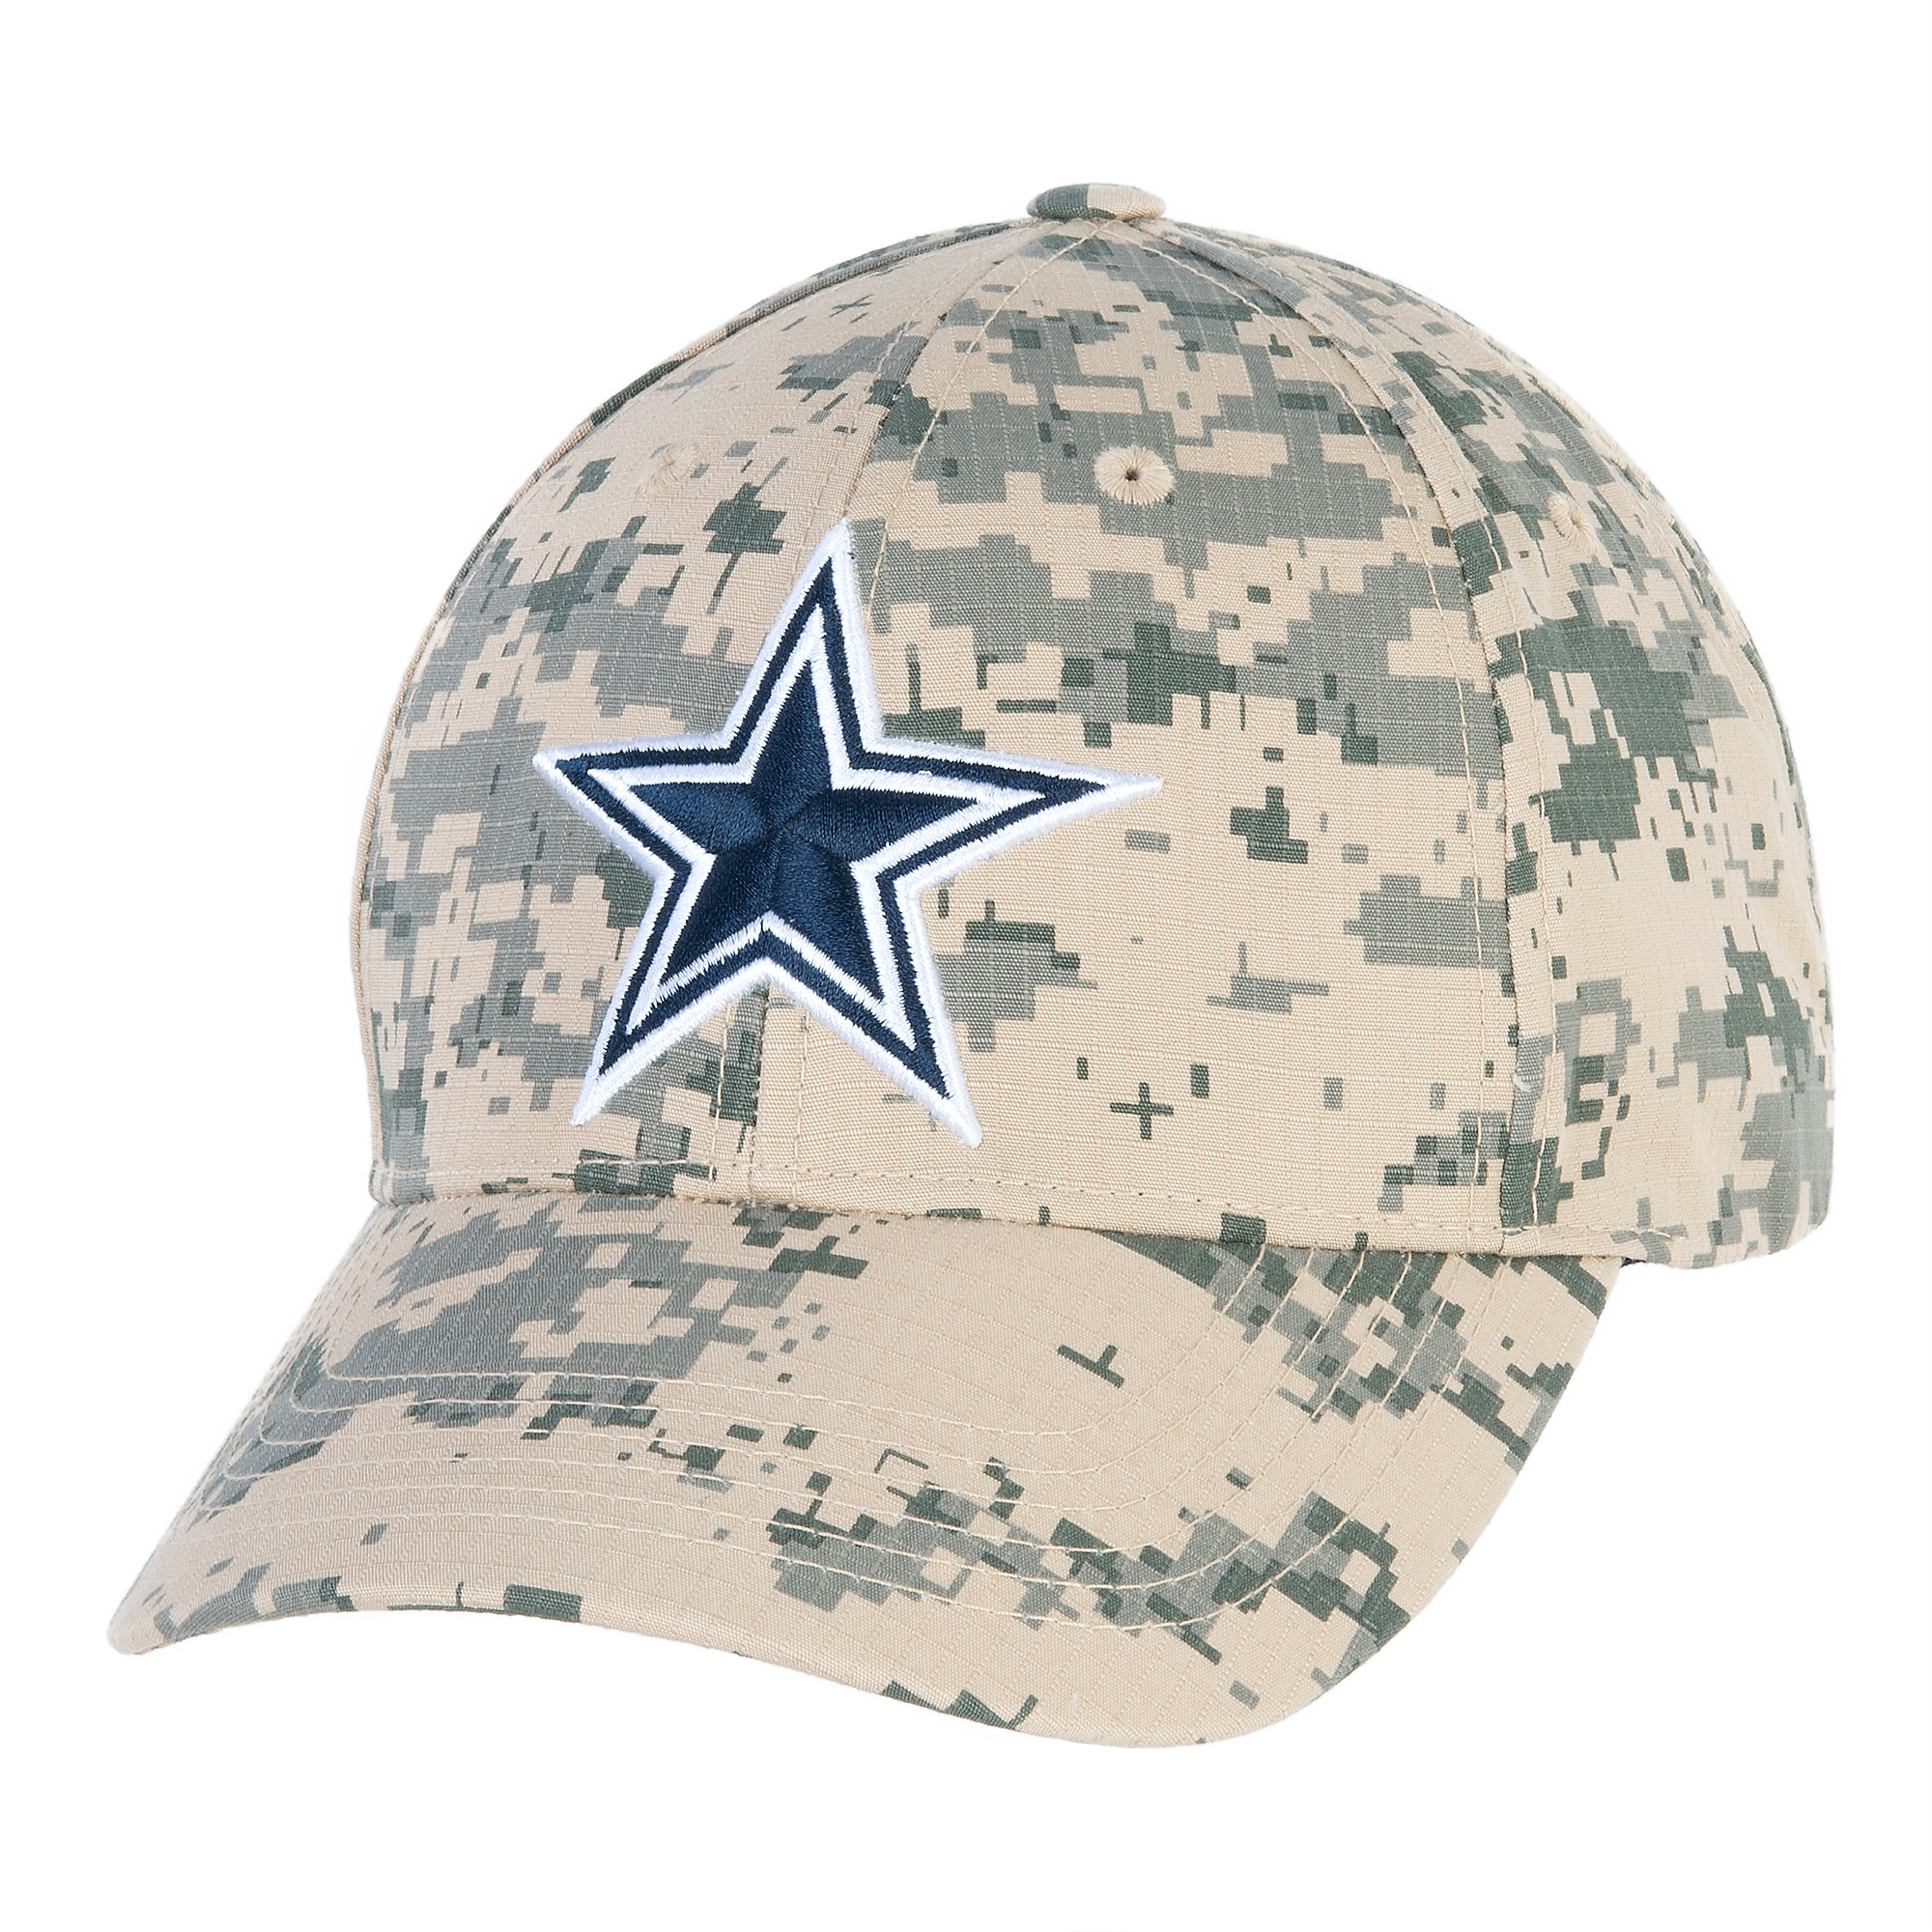 26e5403824 Dallas Cowboys Washed Digital Camo Cap